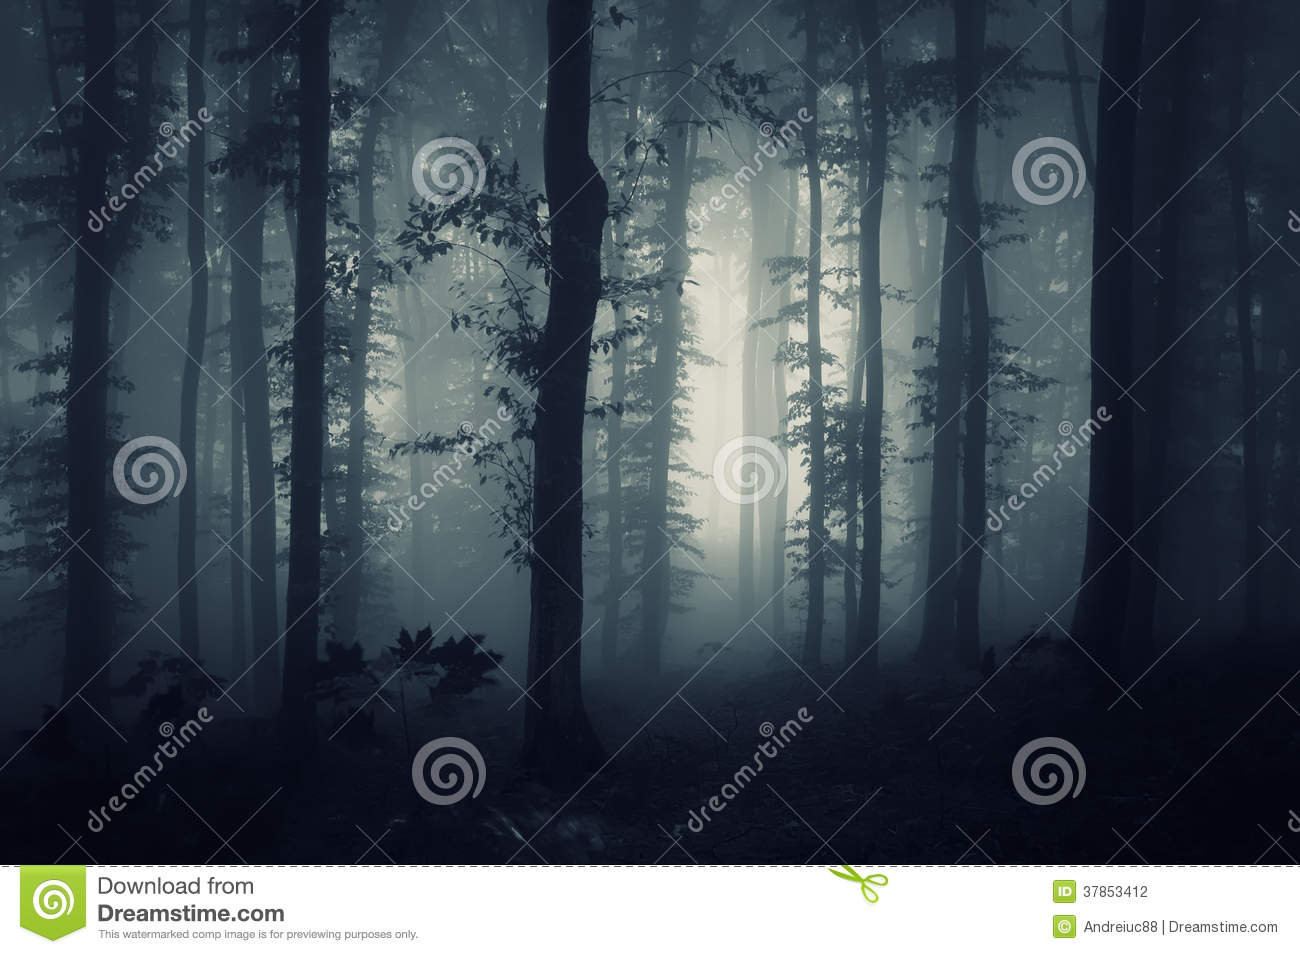 Deep dark woods with creepy fog